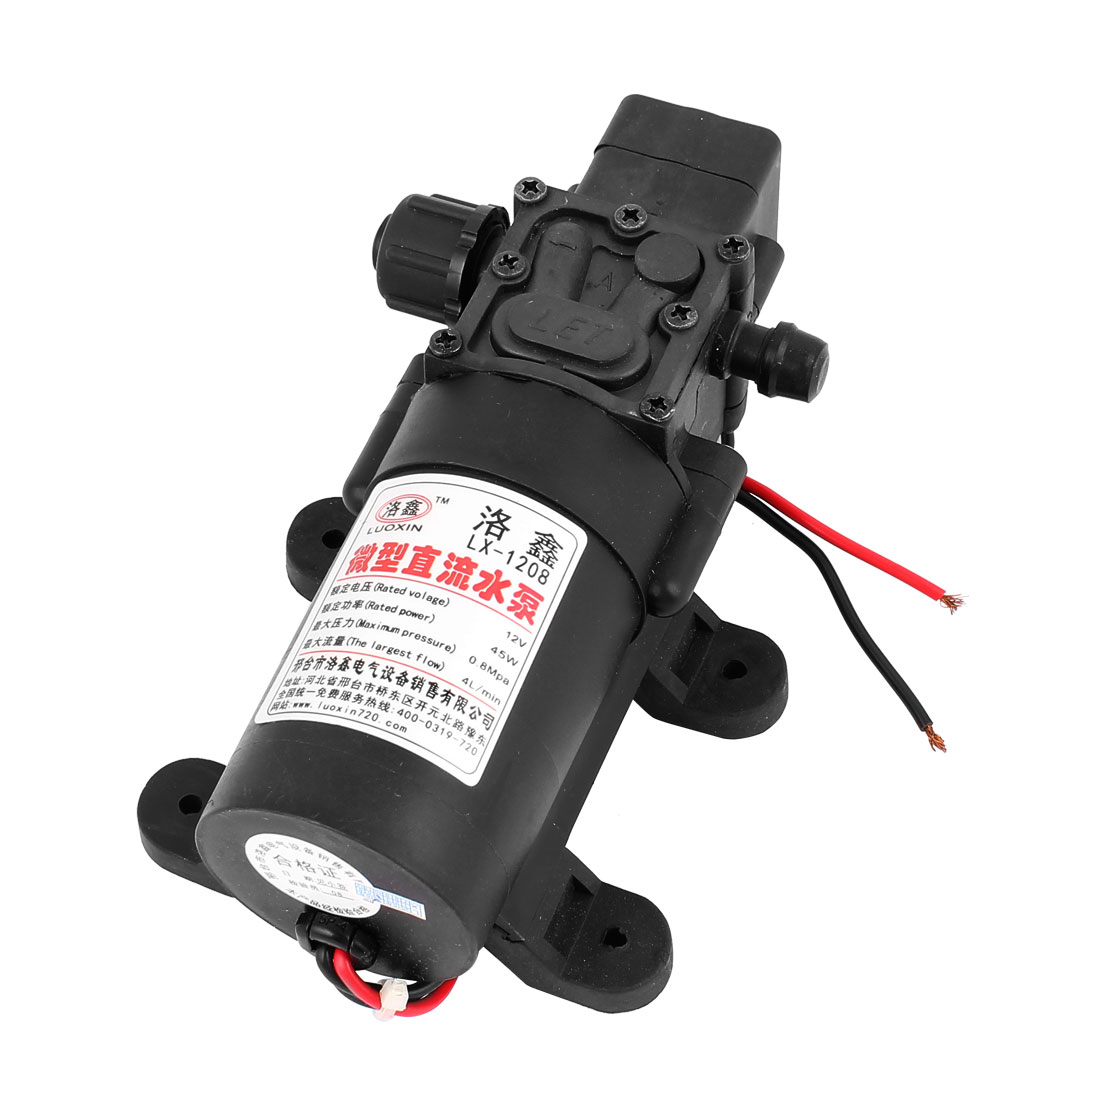 DC 12V 45W Micro Motor Pump 10mm Thread Outlet Straight Inlet Diaphragm Pump